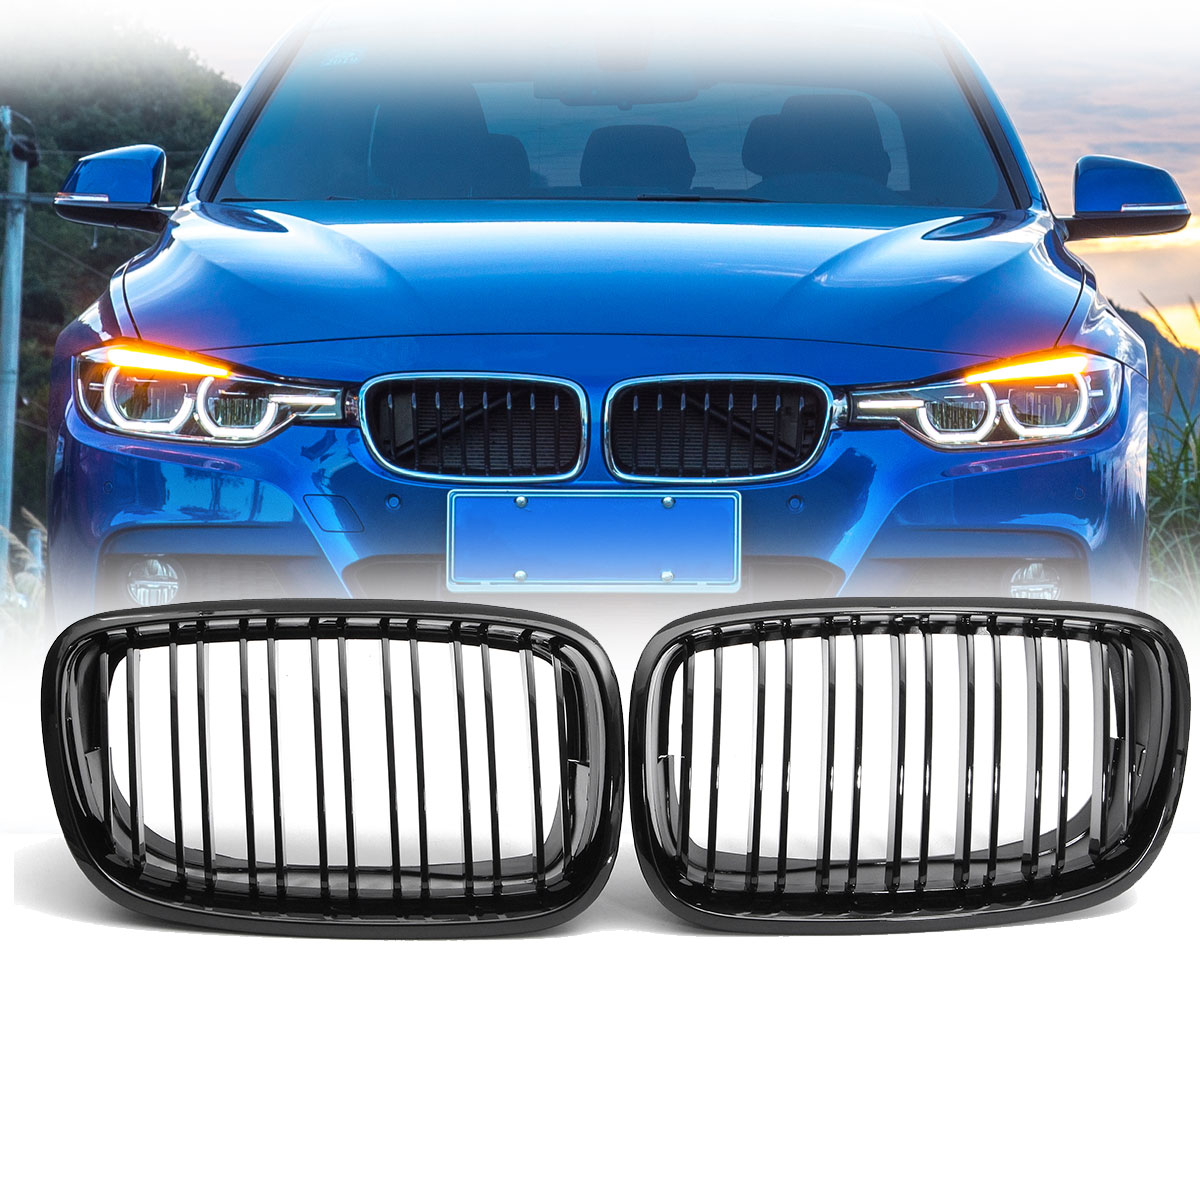 Pair Matte/Gloss Black Double Slat Kidney Grille Front Grill For BMW X5 X6 E70 E71 2007-2013 Car Styling Racing Grills